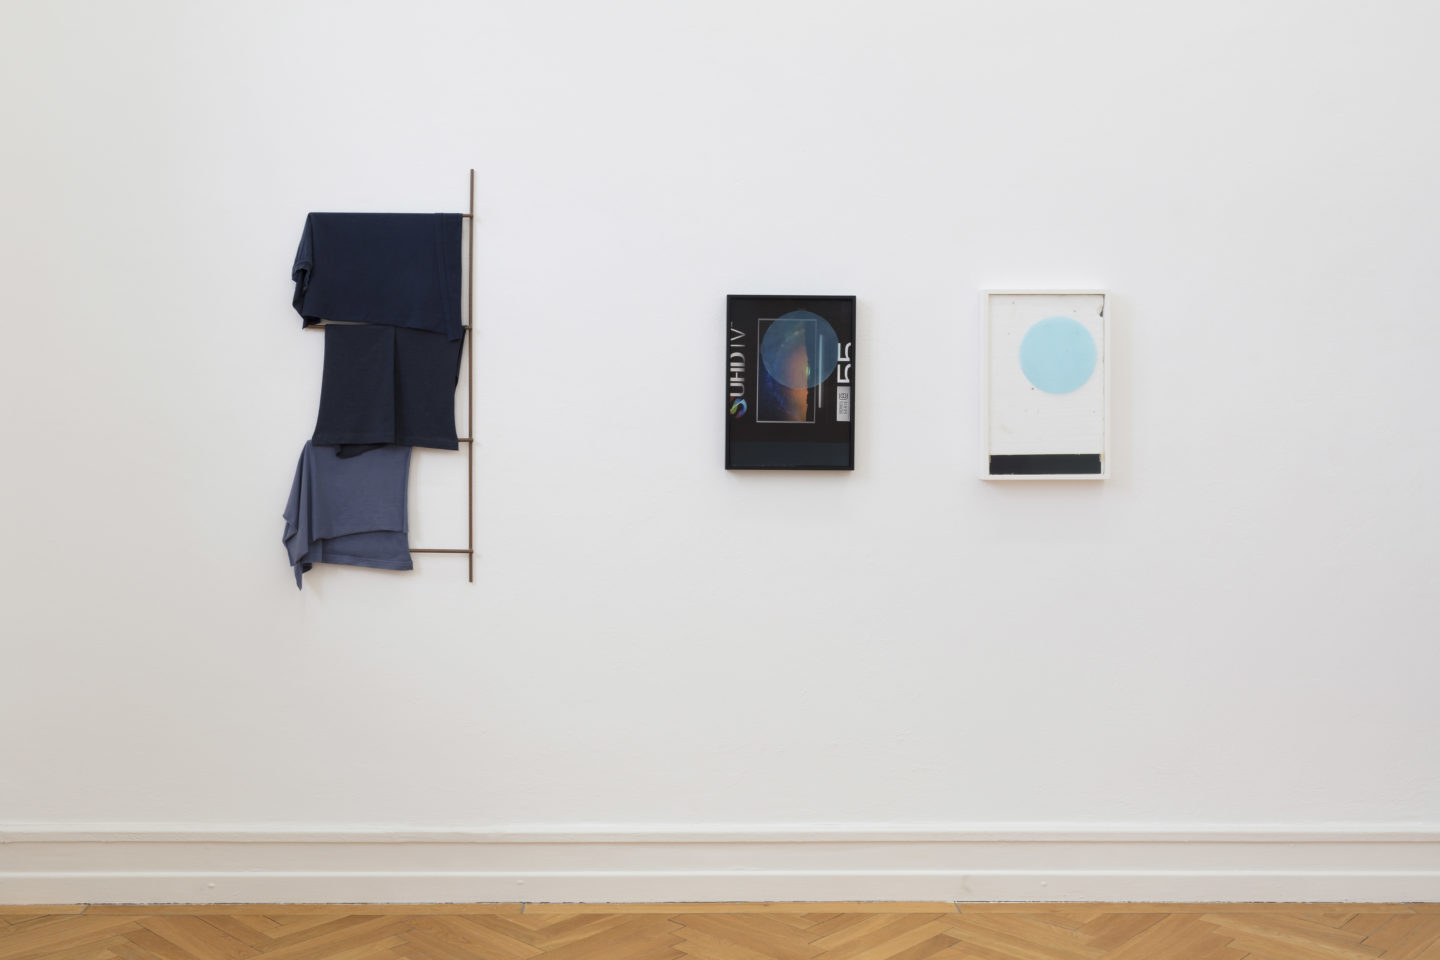 Installation View Edit Oderbolz at Kunsthalle Bern, 2018 / Photo: Gunnar Meier